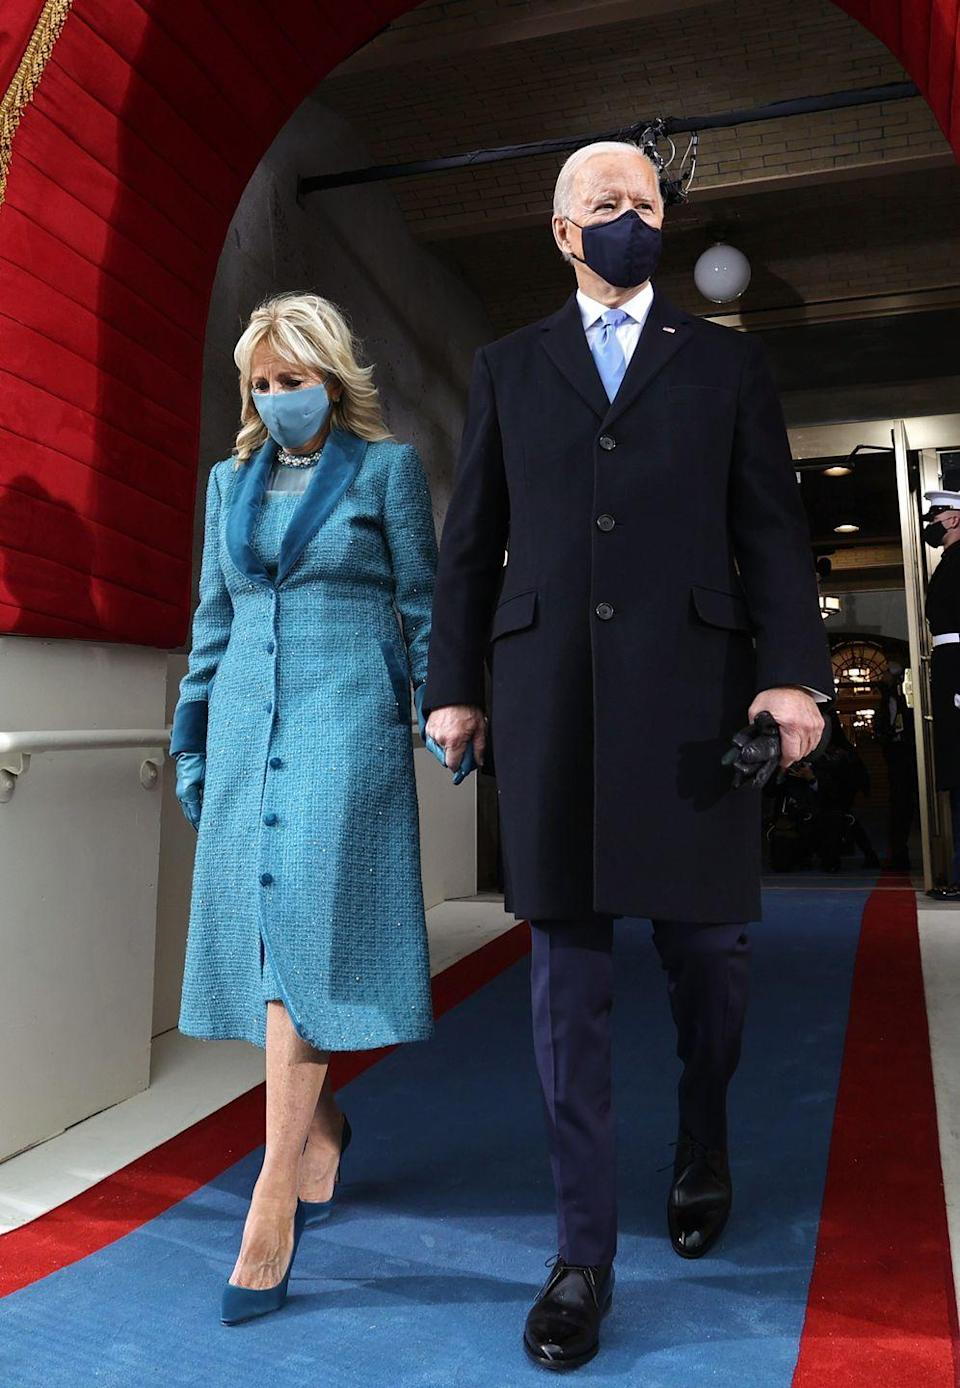 """<p>For the inauguration ceremony and the events that followed—including a visit to Arlington National Cemetery, a parade, and, finally, entering the White House for the first time as First Lady—<a href=""""https://www.townandcountrymag.com/society/politics/a35269485/jill-biden-markarian-blue-dress-inauguration-meaning/"""" rel=""""nofollow noopener"""" target=""""_blank"""" data-ylk=""""slk:Dr. Jill Biden wore a custom dress and overcoat by Markarian"""" class=""""link rapid-noclick-resp"""">Dr. Jill Biden wore a custom dress and overcoat by Markarian</a>. The New York-based label from designer Alexandra O'Neill operates with a waste-reducing made-to-order model, and proudly manufactures its wares in the city's Garment District. In a press release, the brand revealed that the color blue was chosen to """"signify trust, confidence, and stability.""""</p>"""